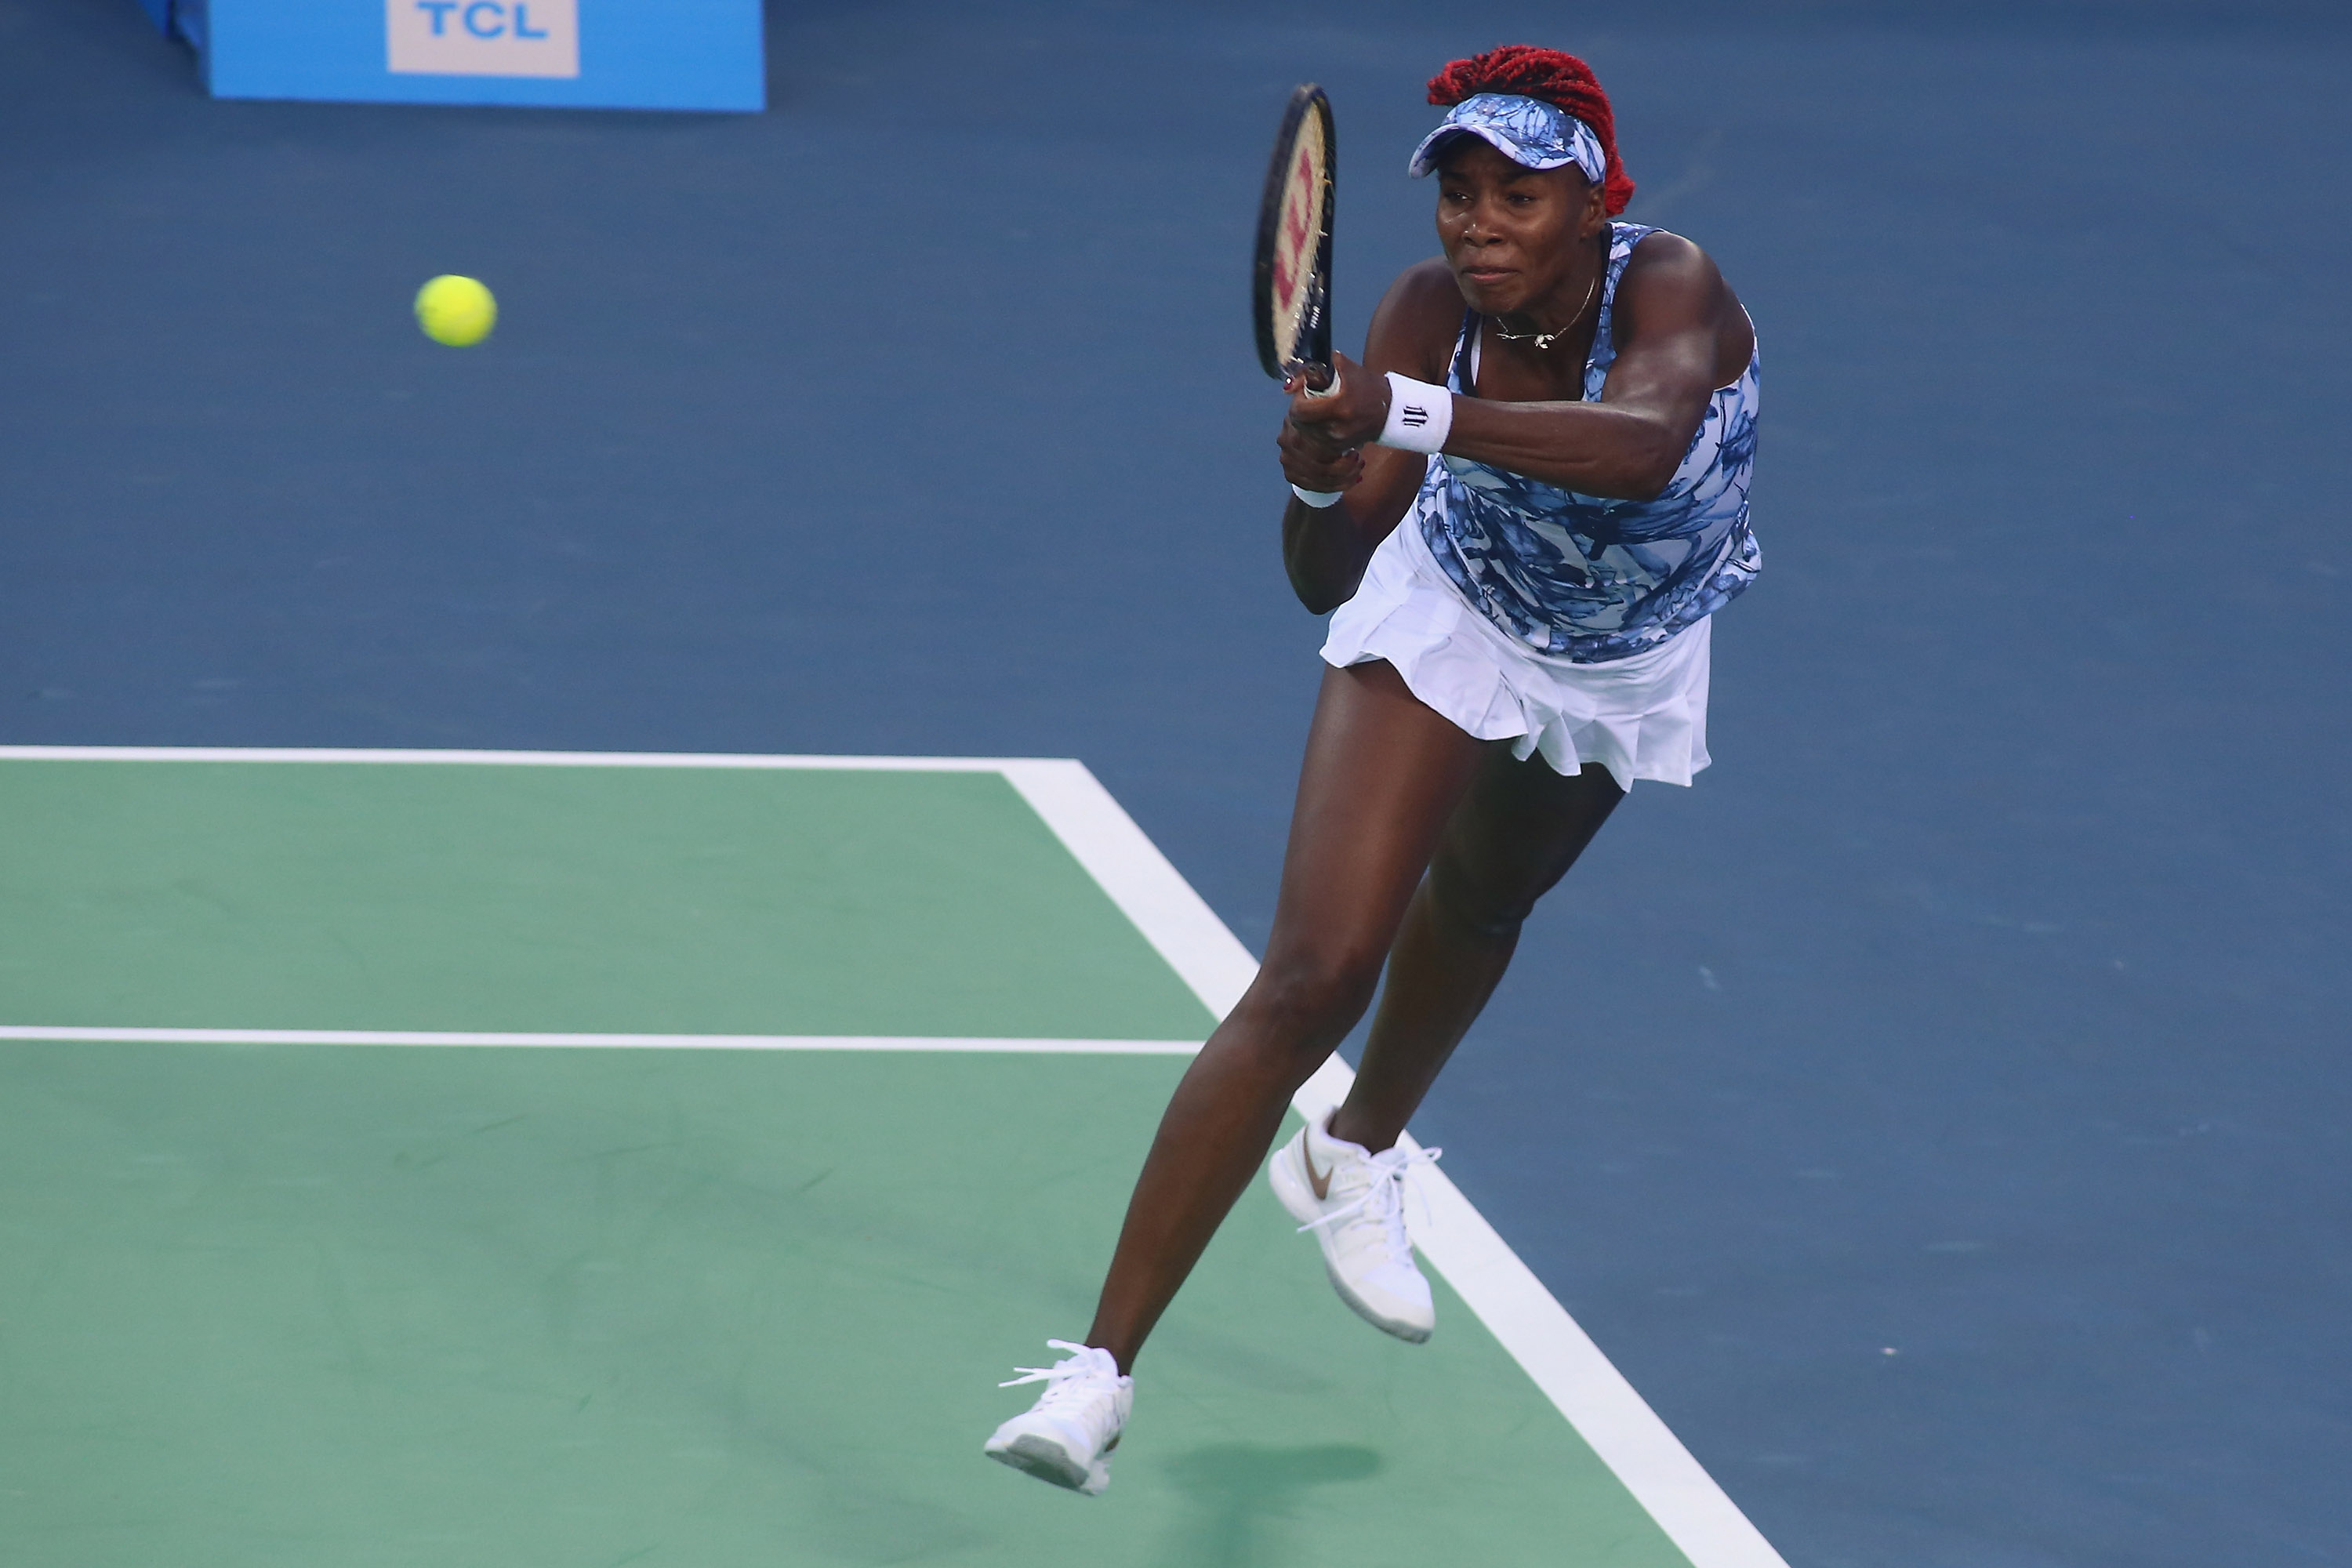 Venus Williams returns a shot during her match against Caroline Garcia of France.